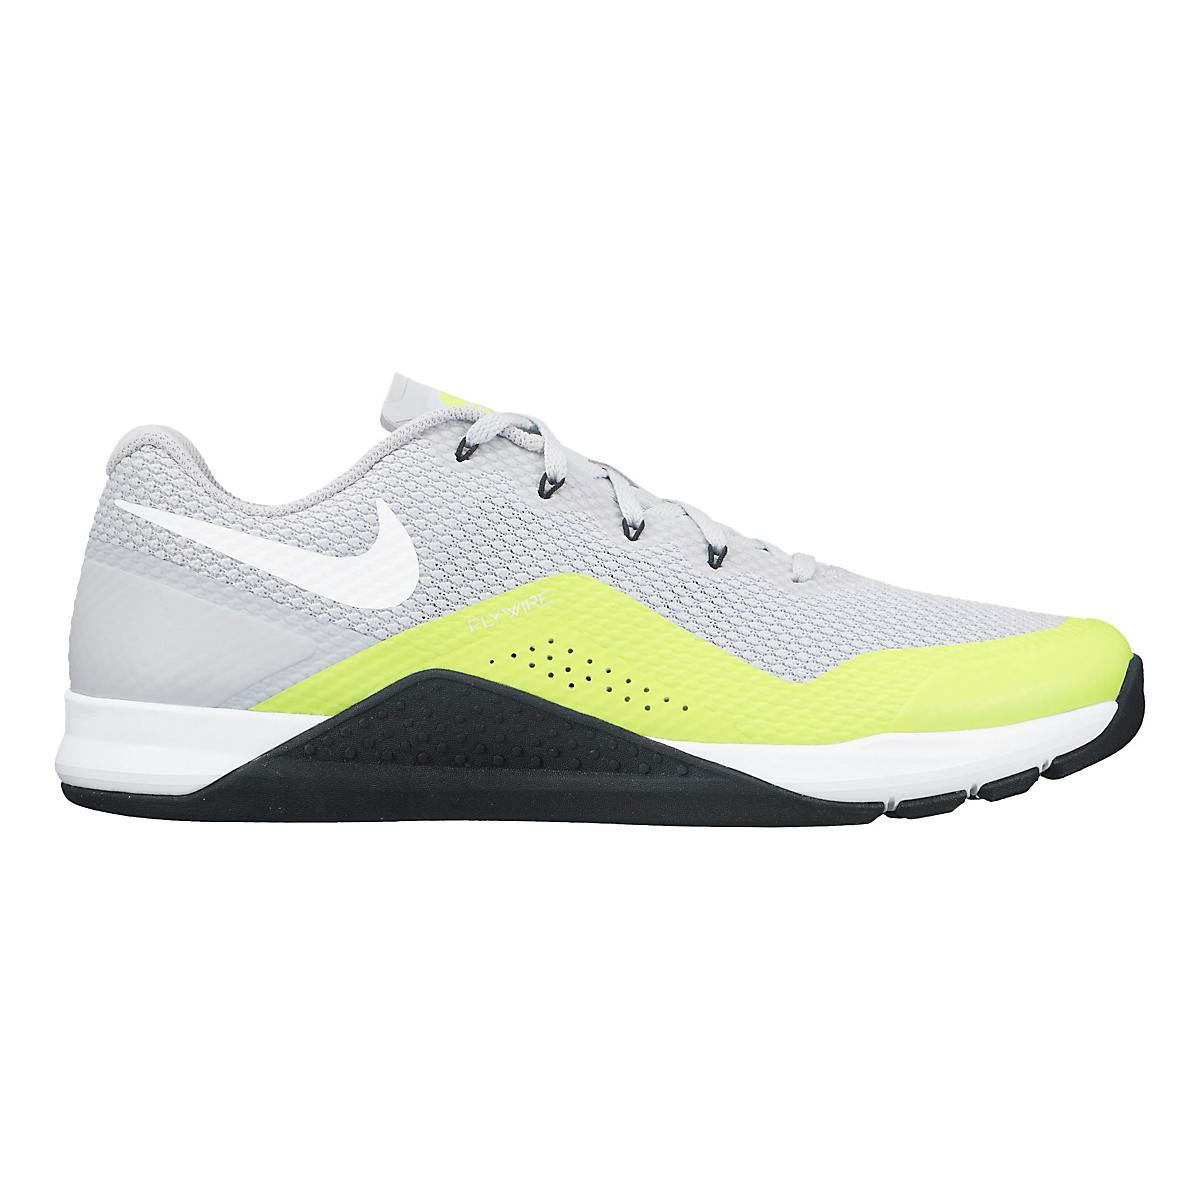 Mens Nike Metcon Repper Dsx Cross Training Shoe At Road Runner Sports